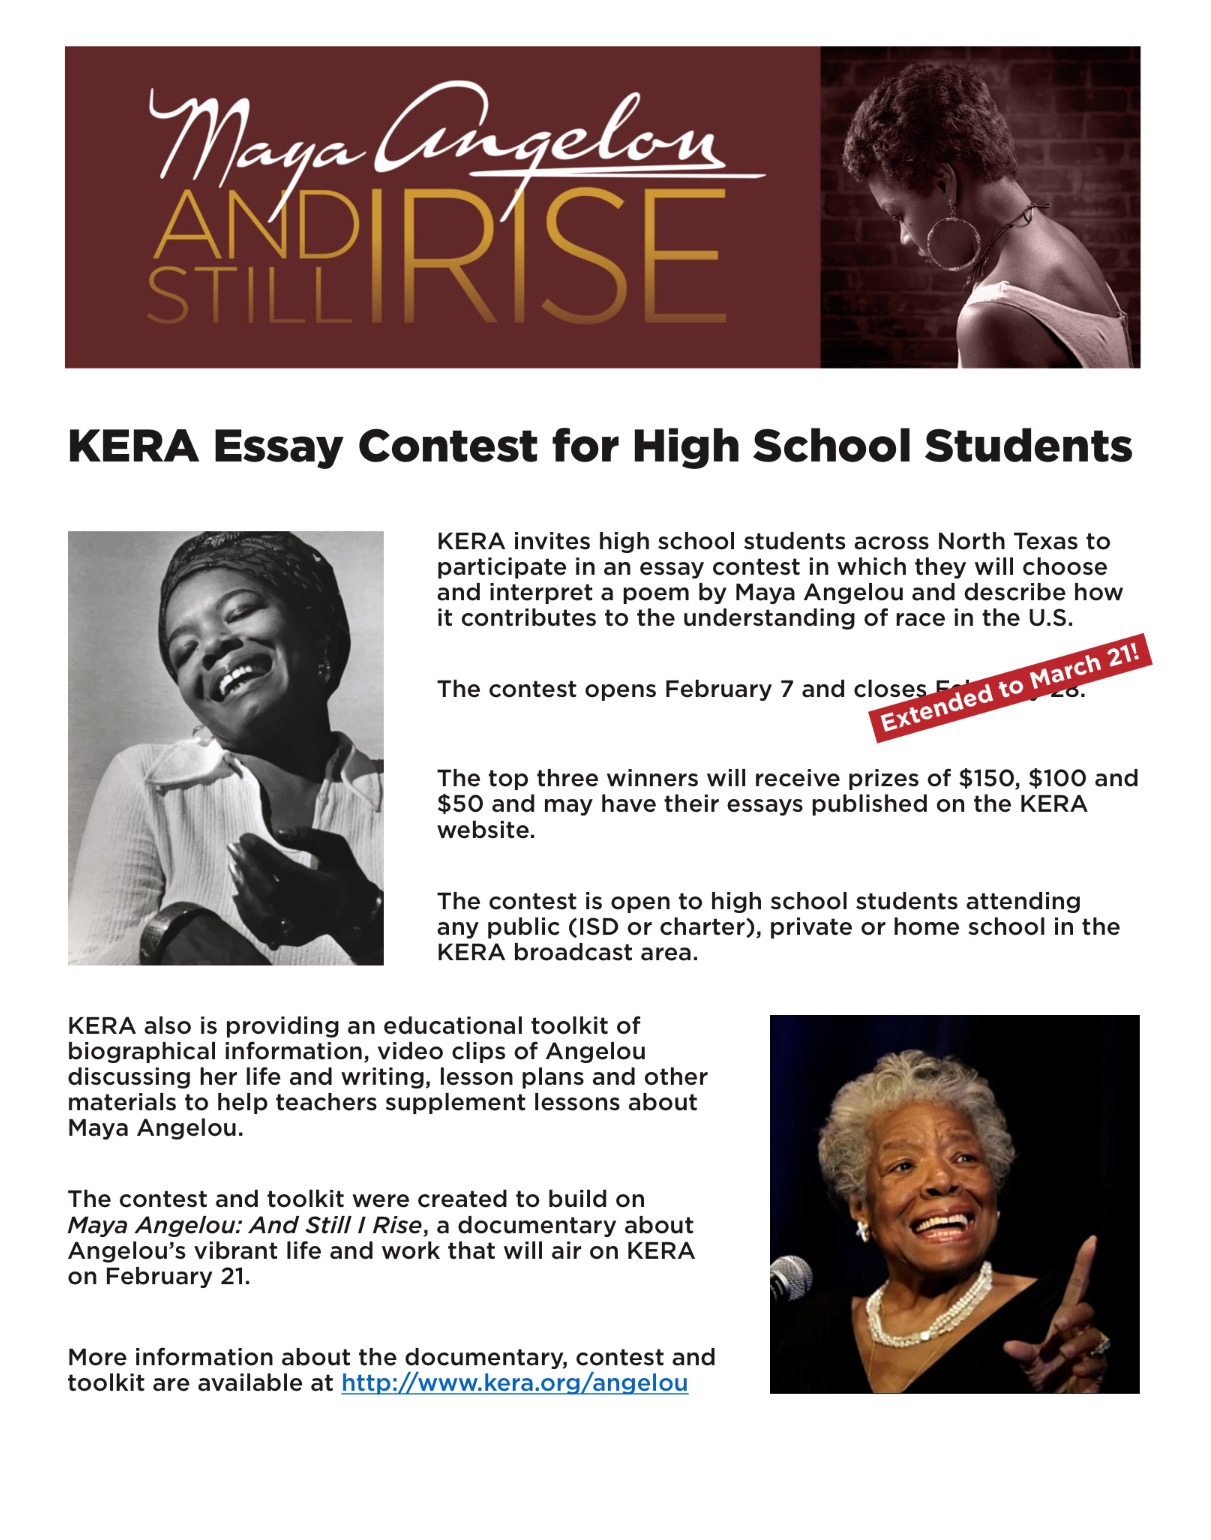 Still i rise by maya angelou essay